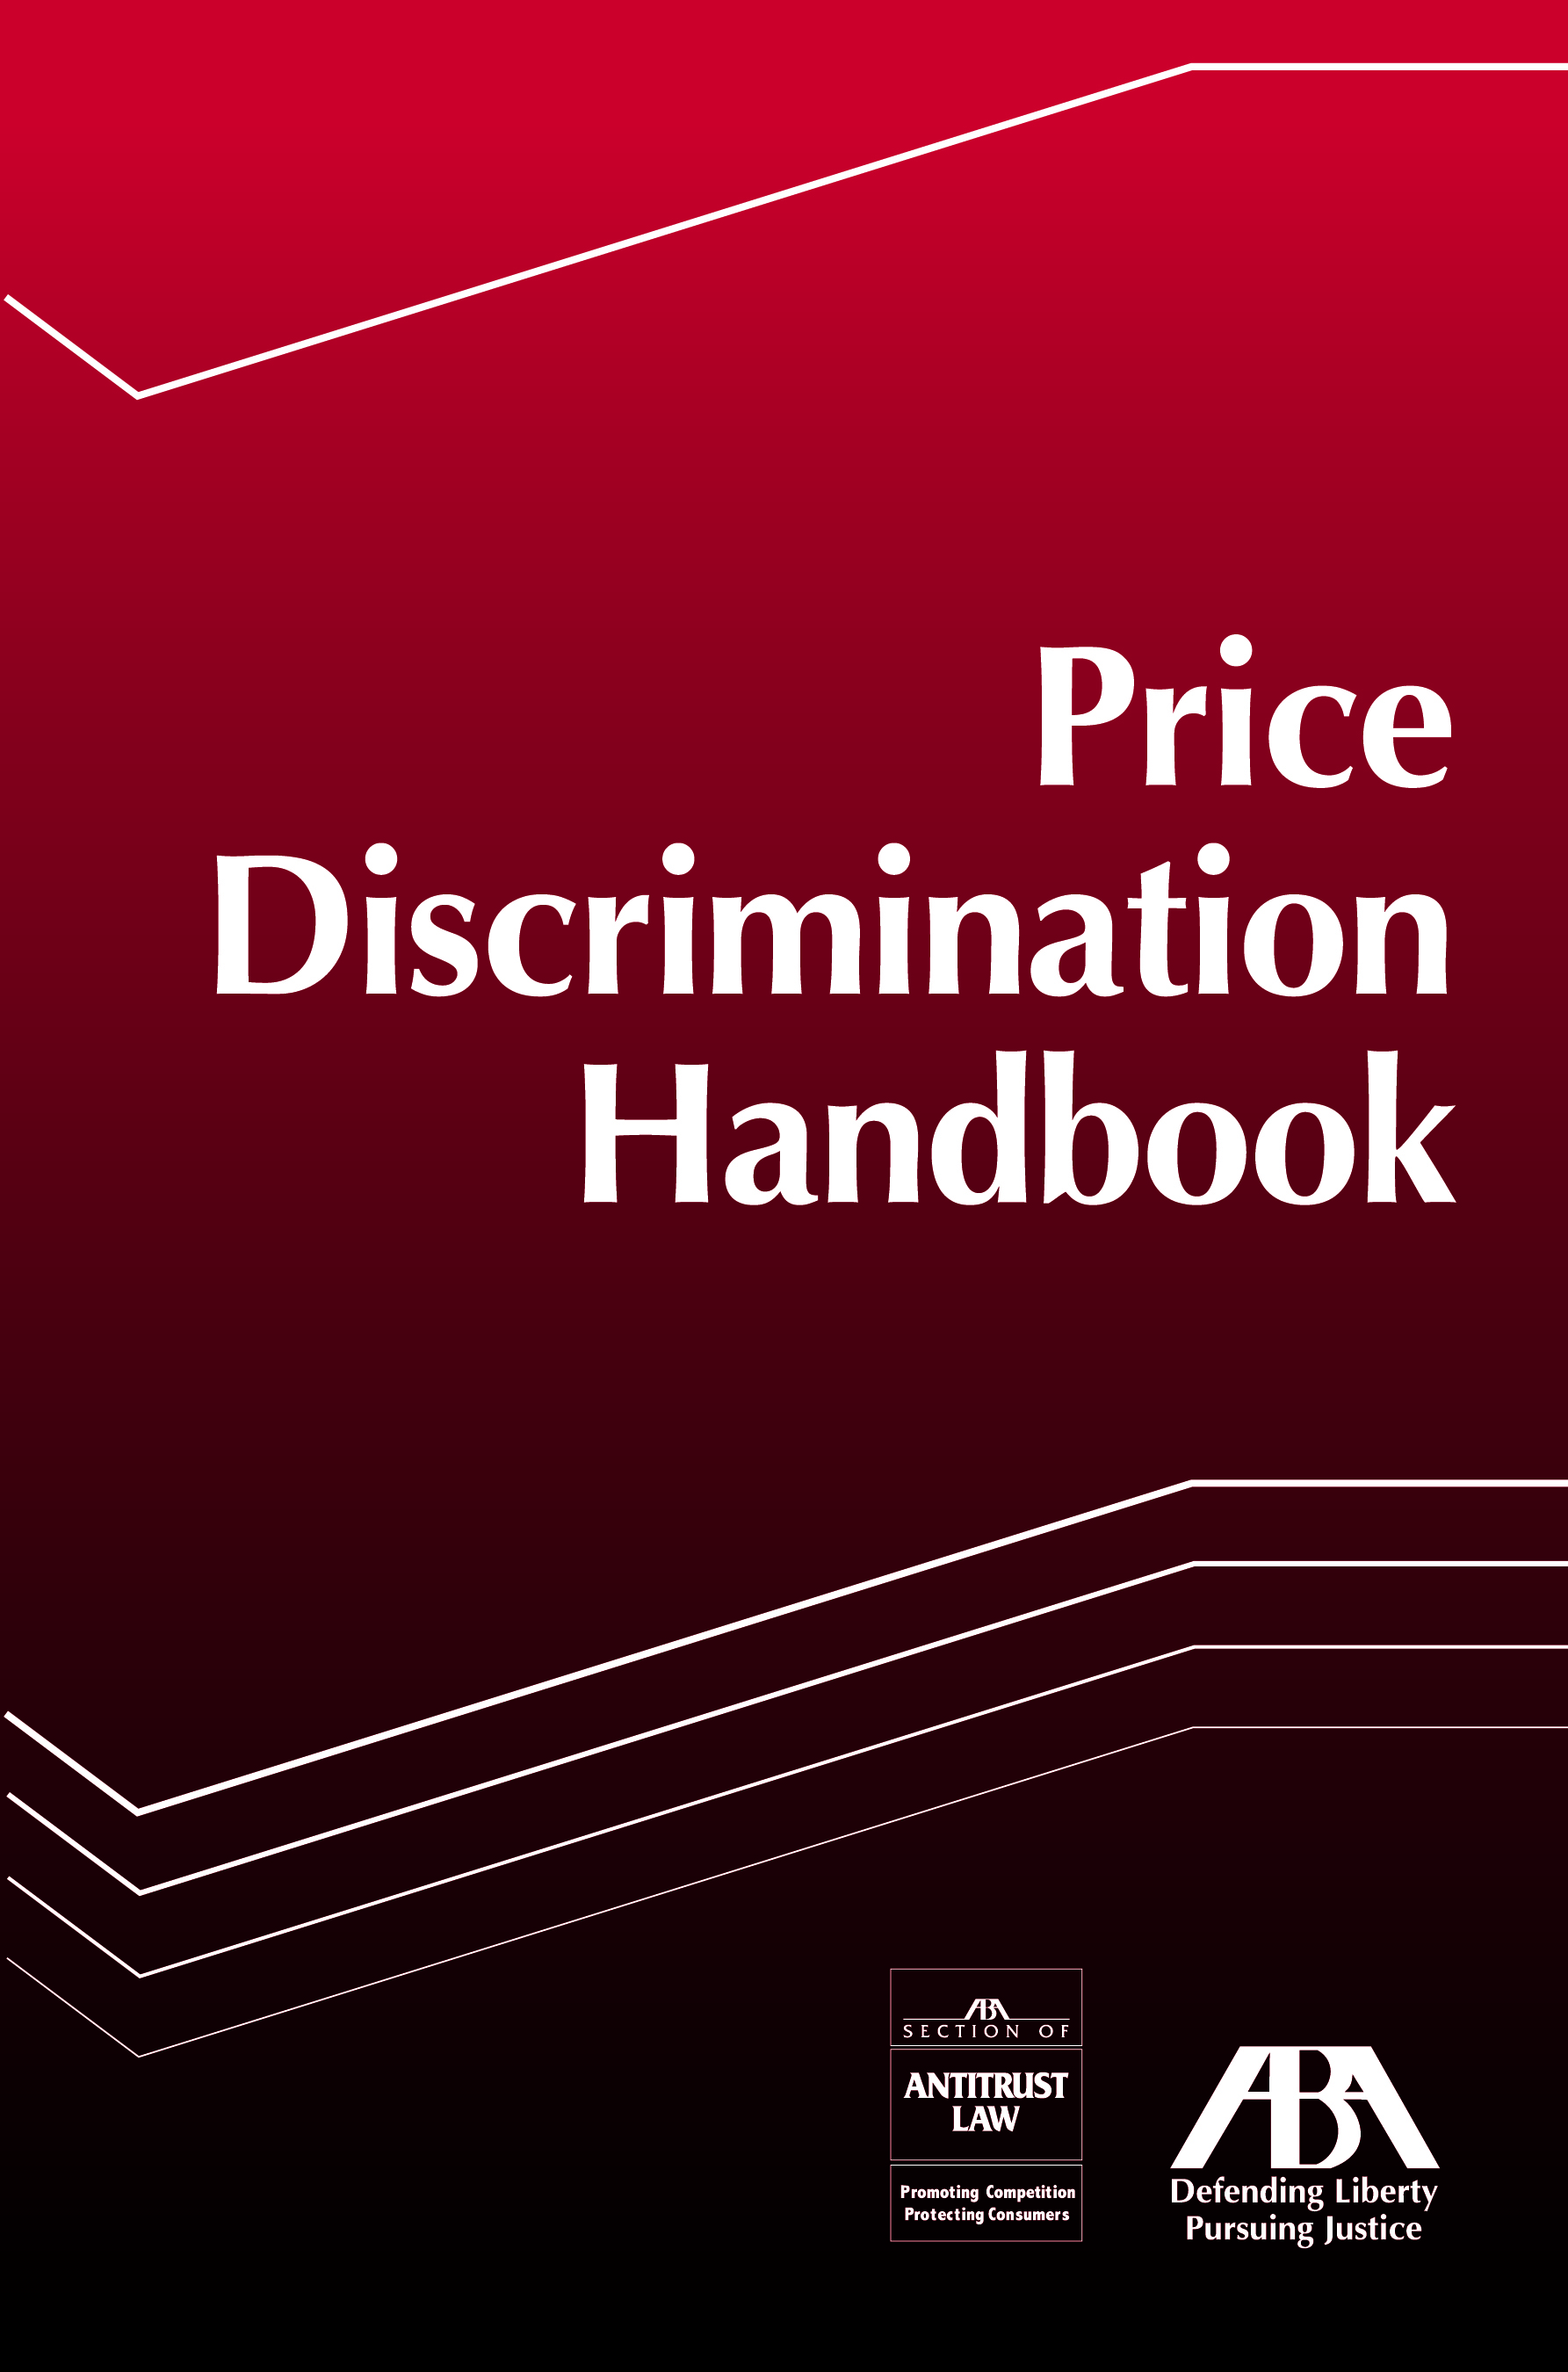 Price Discrimination Handbook